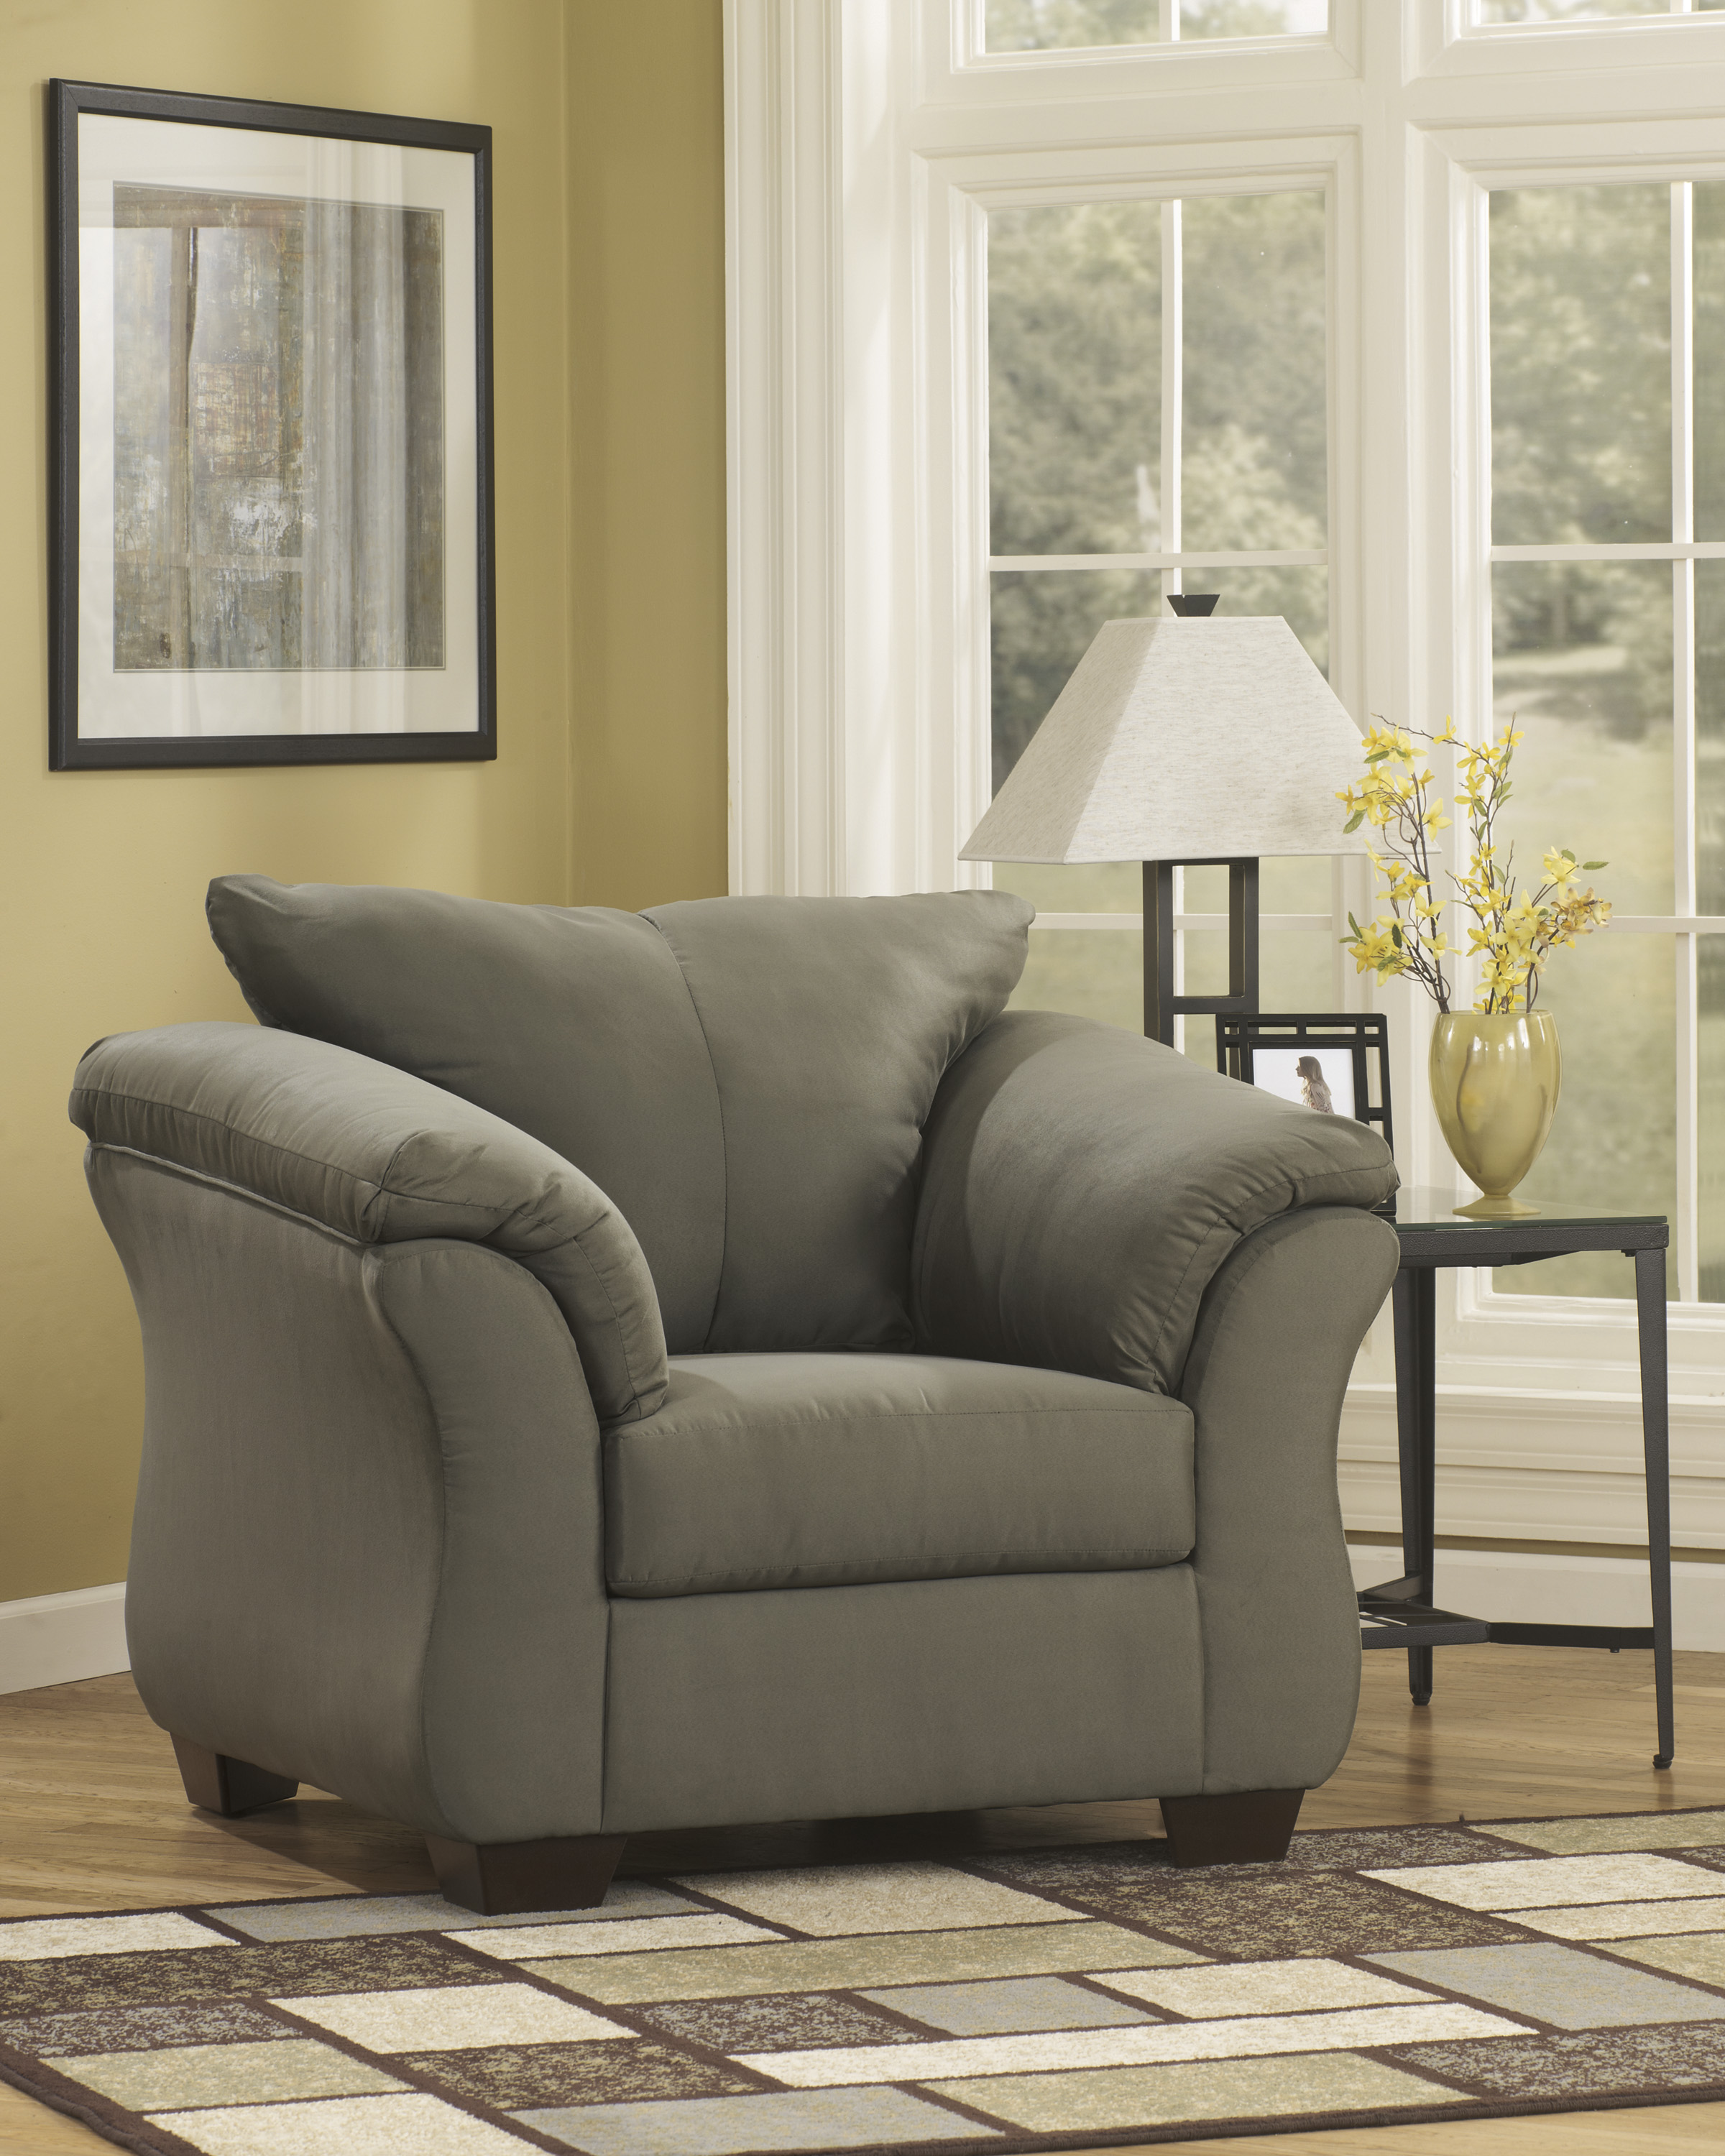 Rent A Center Accent Chairs.Majik Accent Chair Rental In Pennsylvania Rent To Own